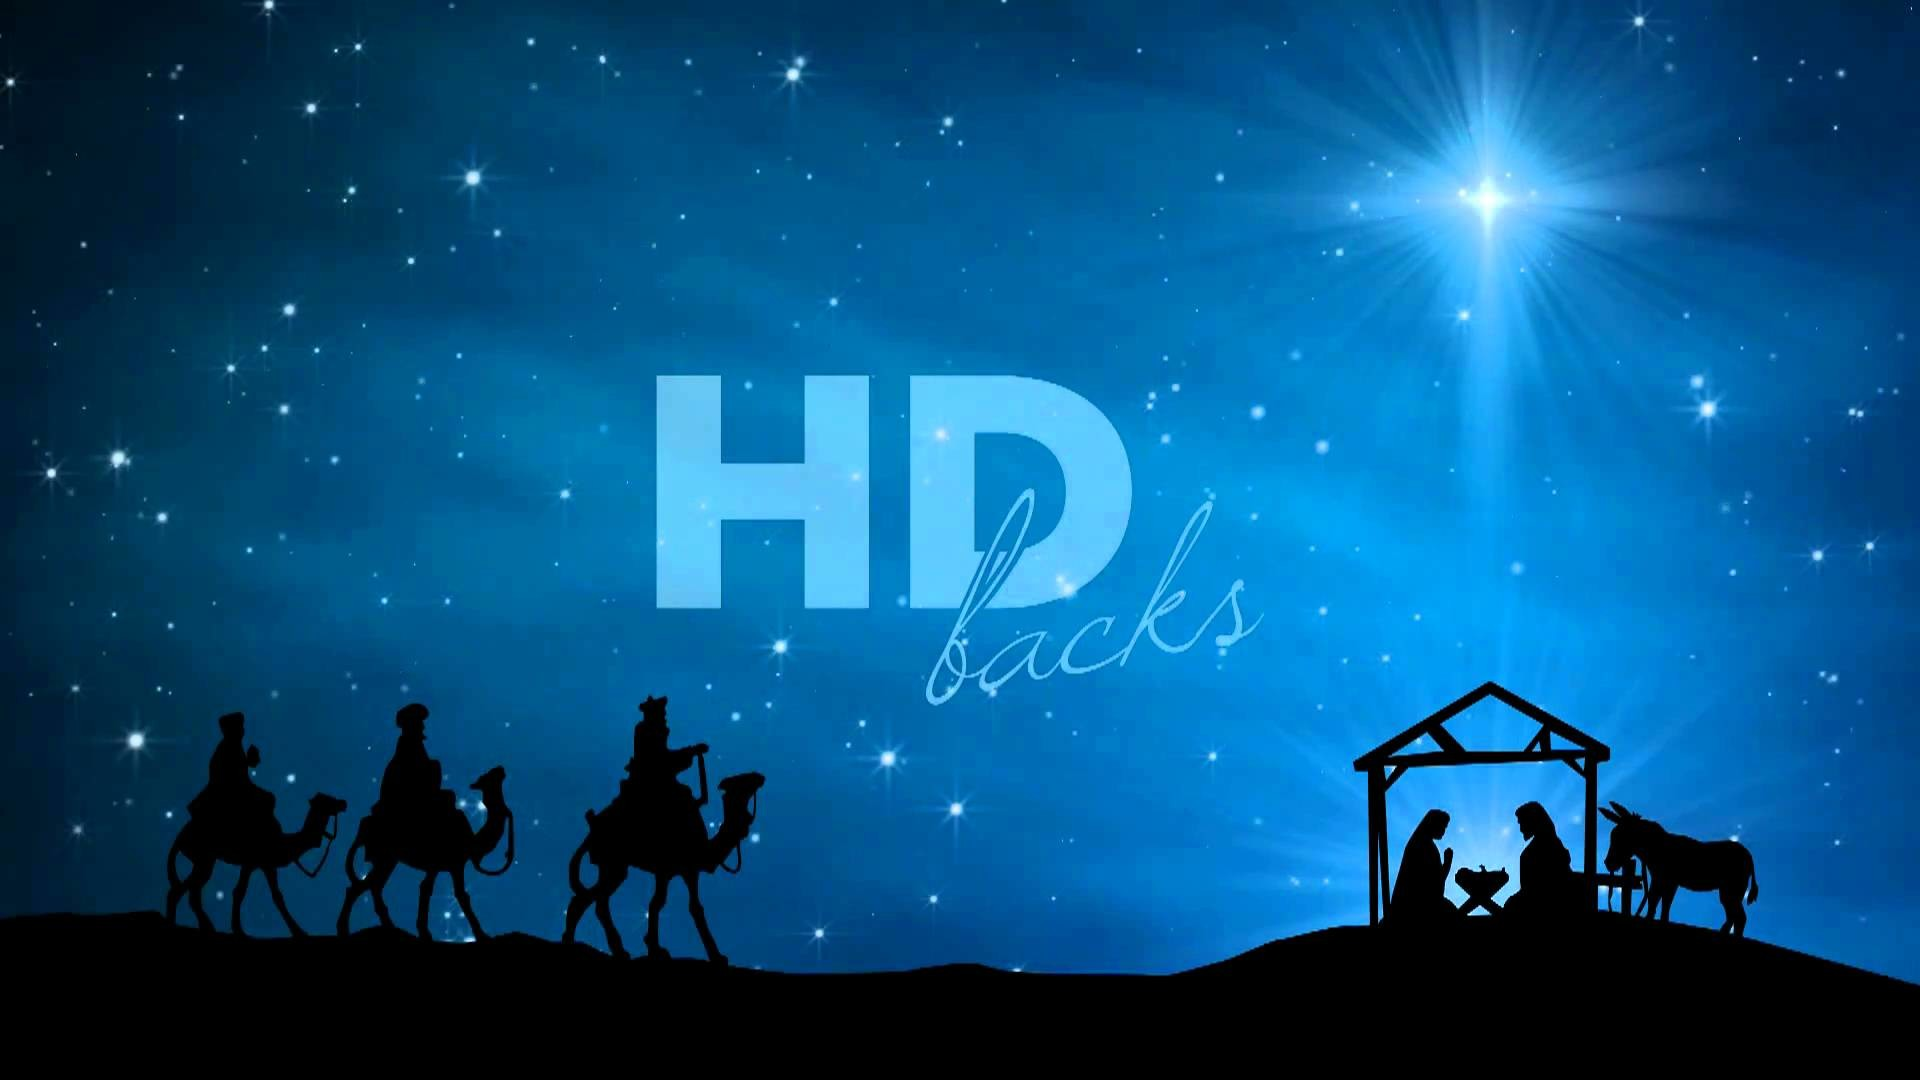 Nativity Scene Background 183 ① Wallpapertag